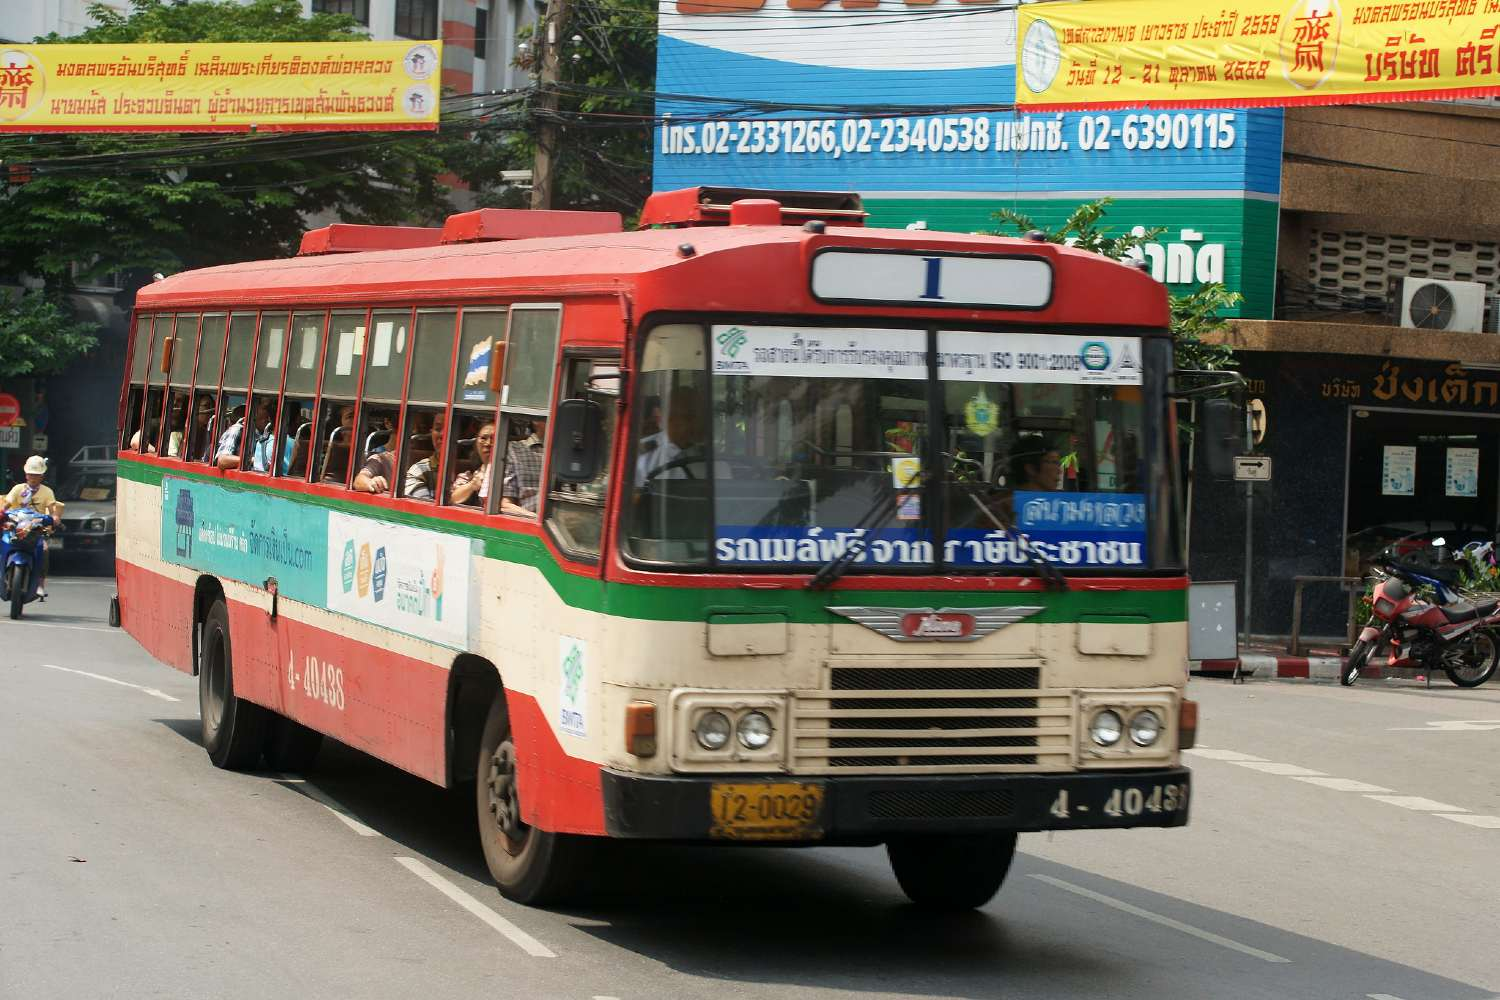 Een rode bus in Bangkok, Thailand